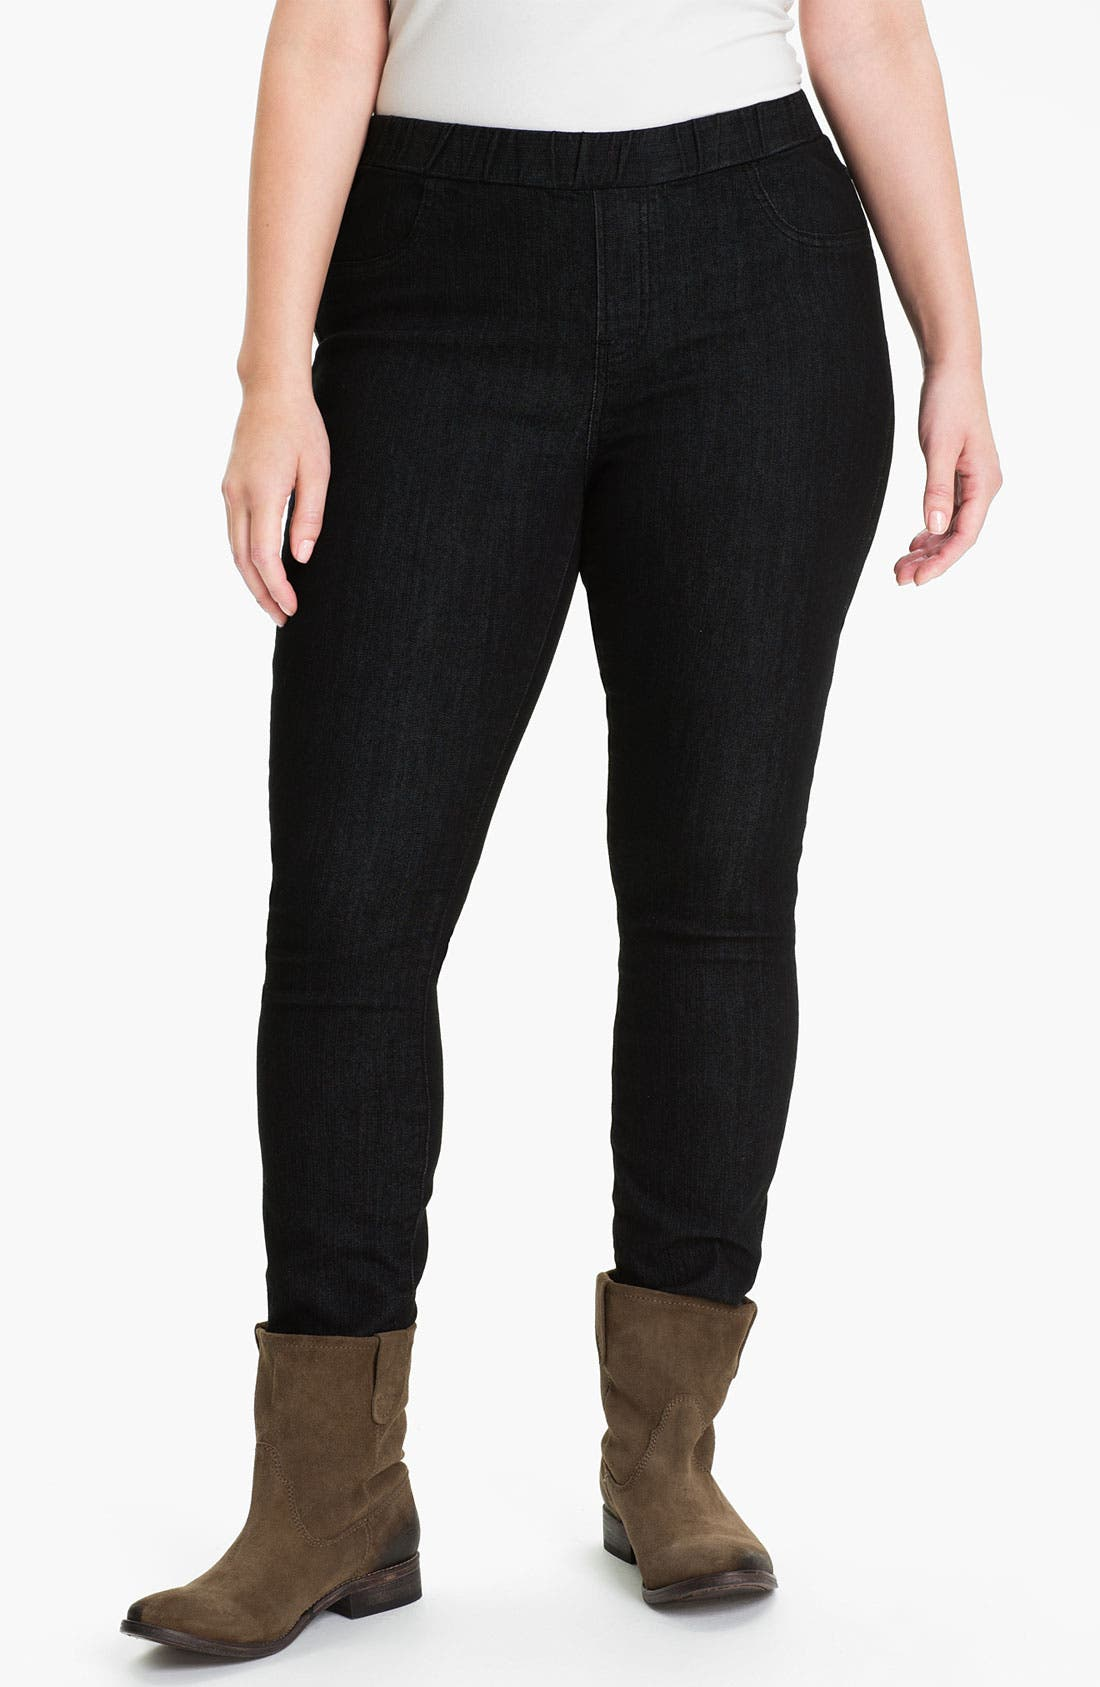 Alternate Image 1 Selected - Lucky Brand Leggings (Plus)